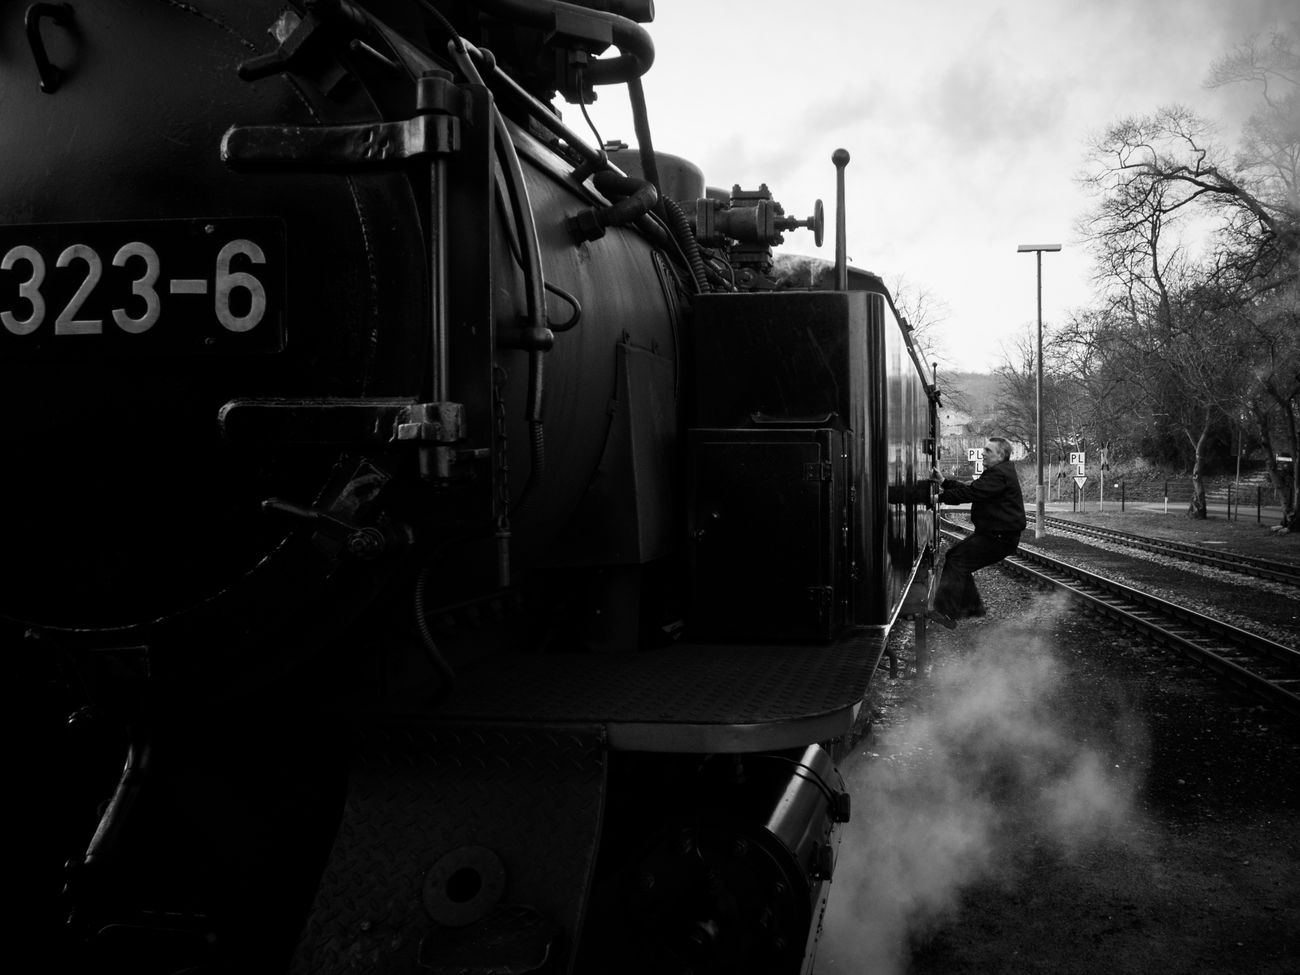 🚂 Showcase: January Train People Watching Taking Photos Light And Shadow Blackandwhite Black And White Blackandwhite Photography Black & White Black&white Bad Doberan Zug Eisenbahnfotografie